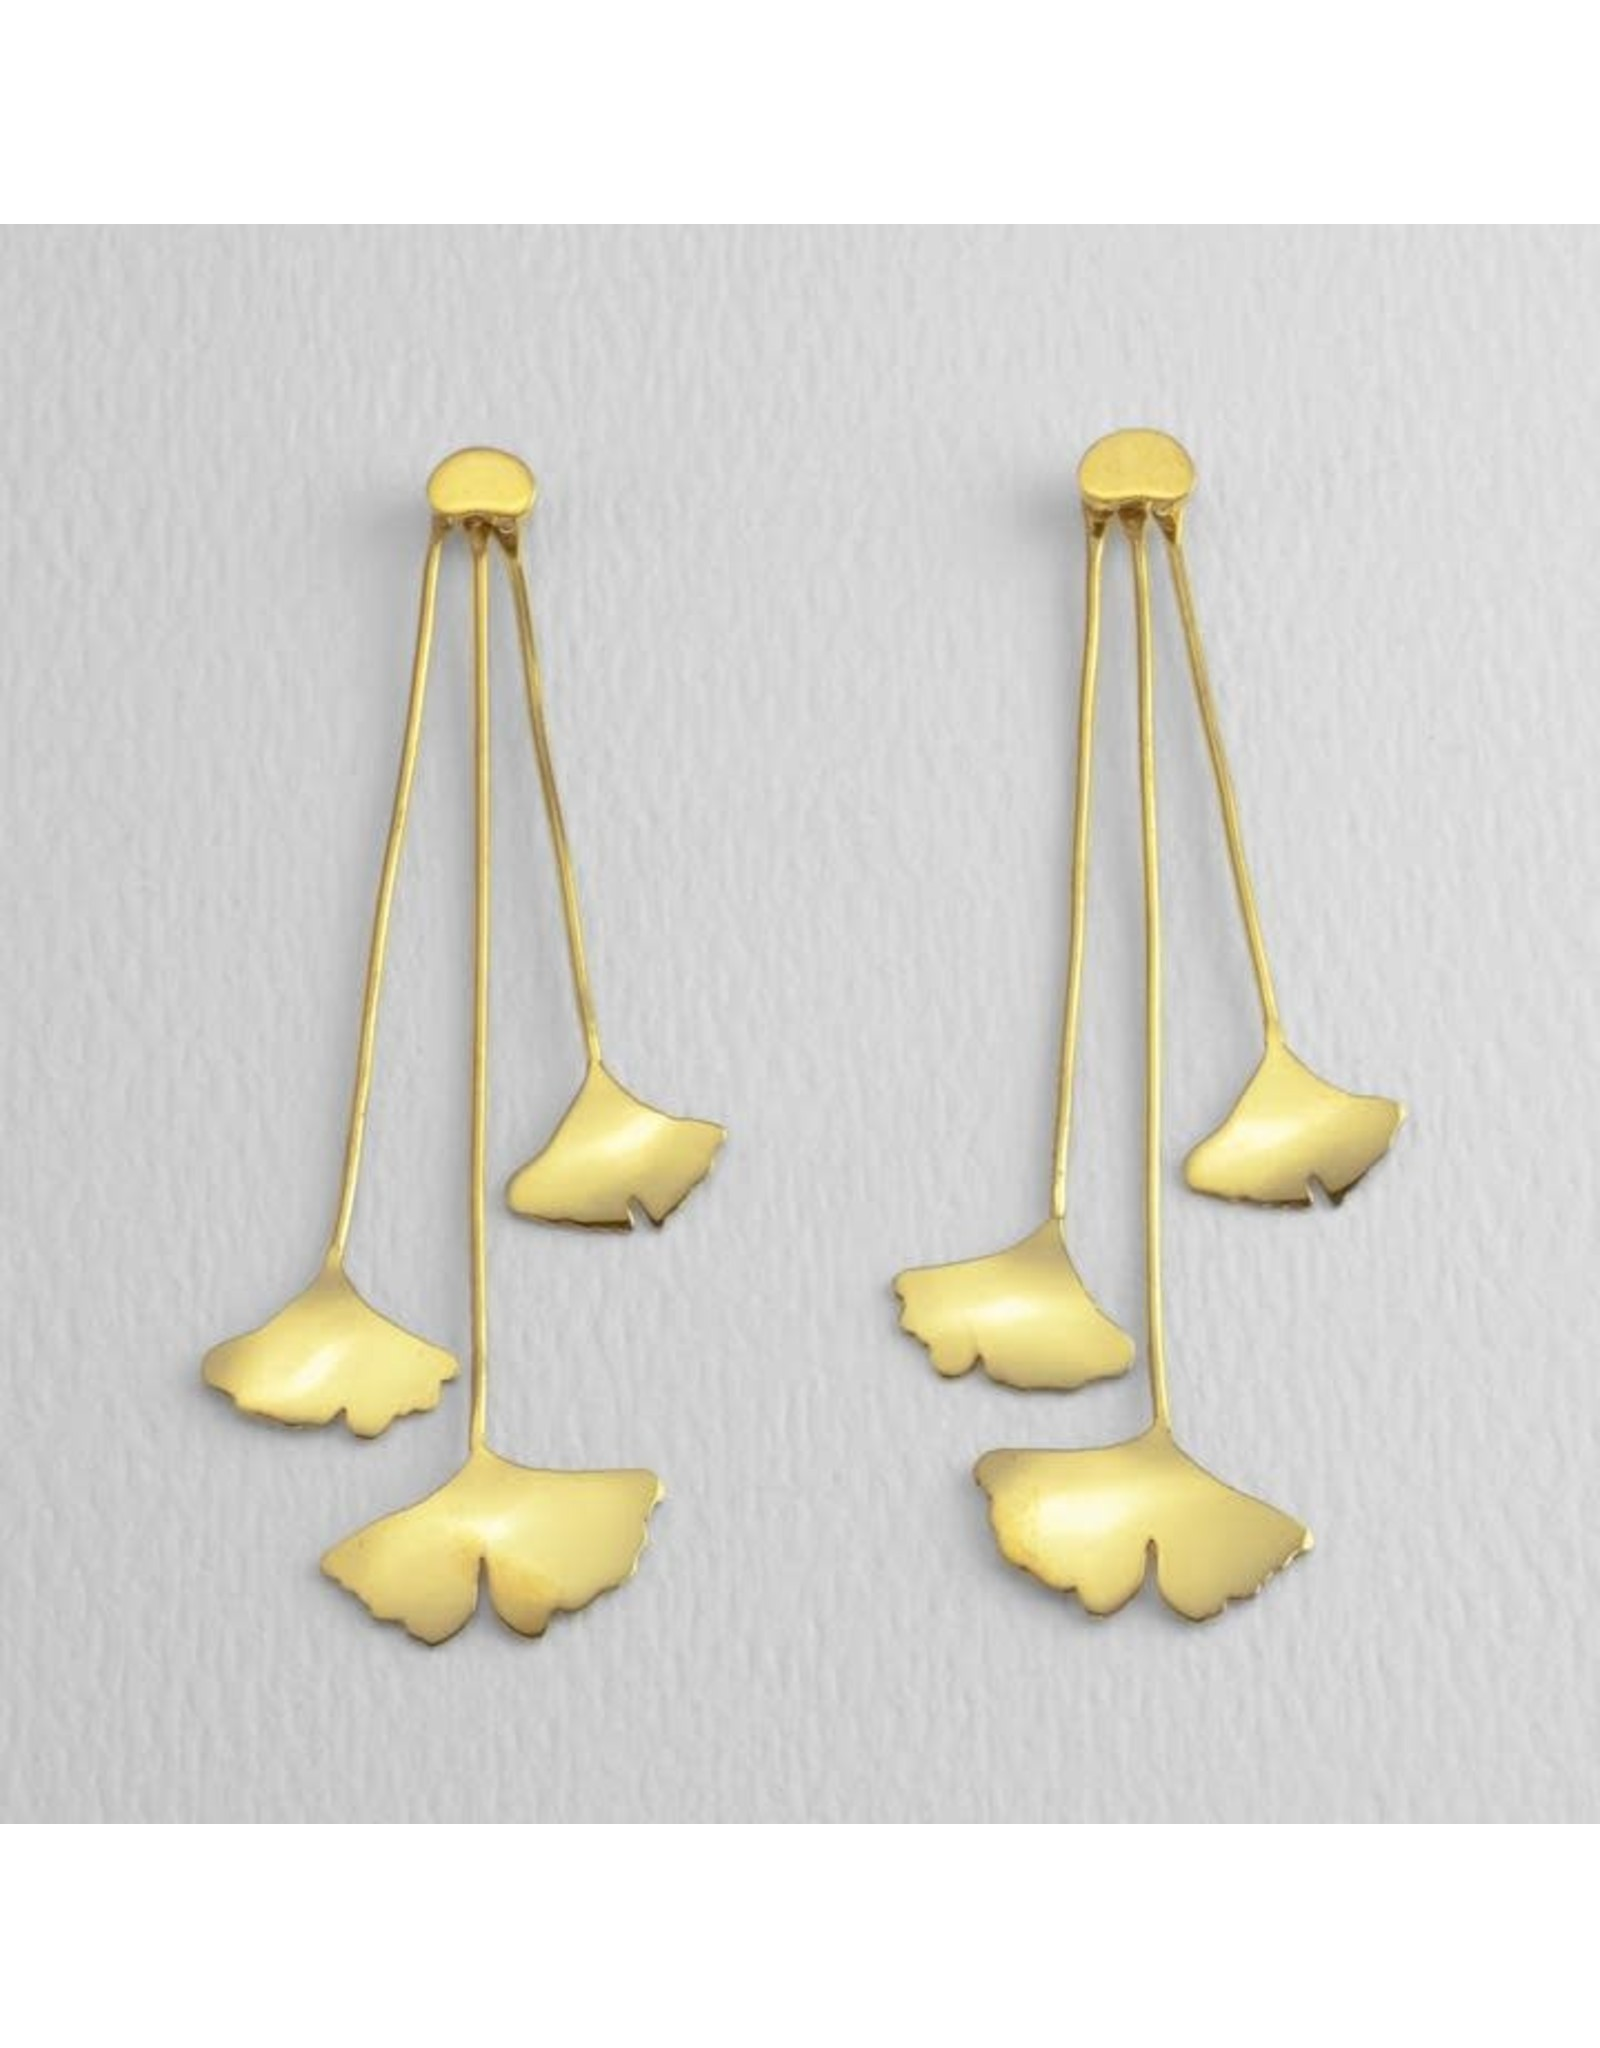 Ginkgo Drop Post Earrings 14 kt Gold Dipped, Mexico